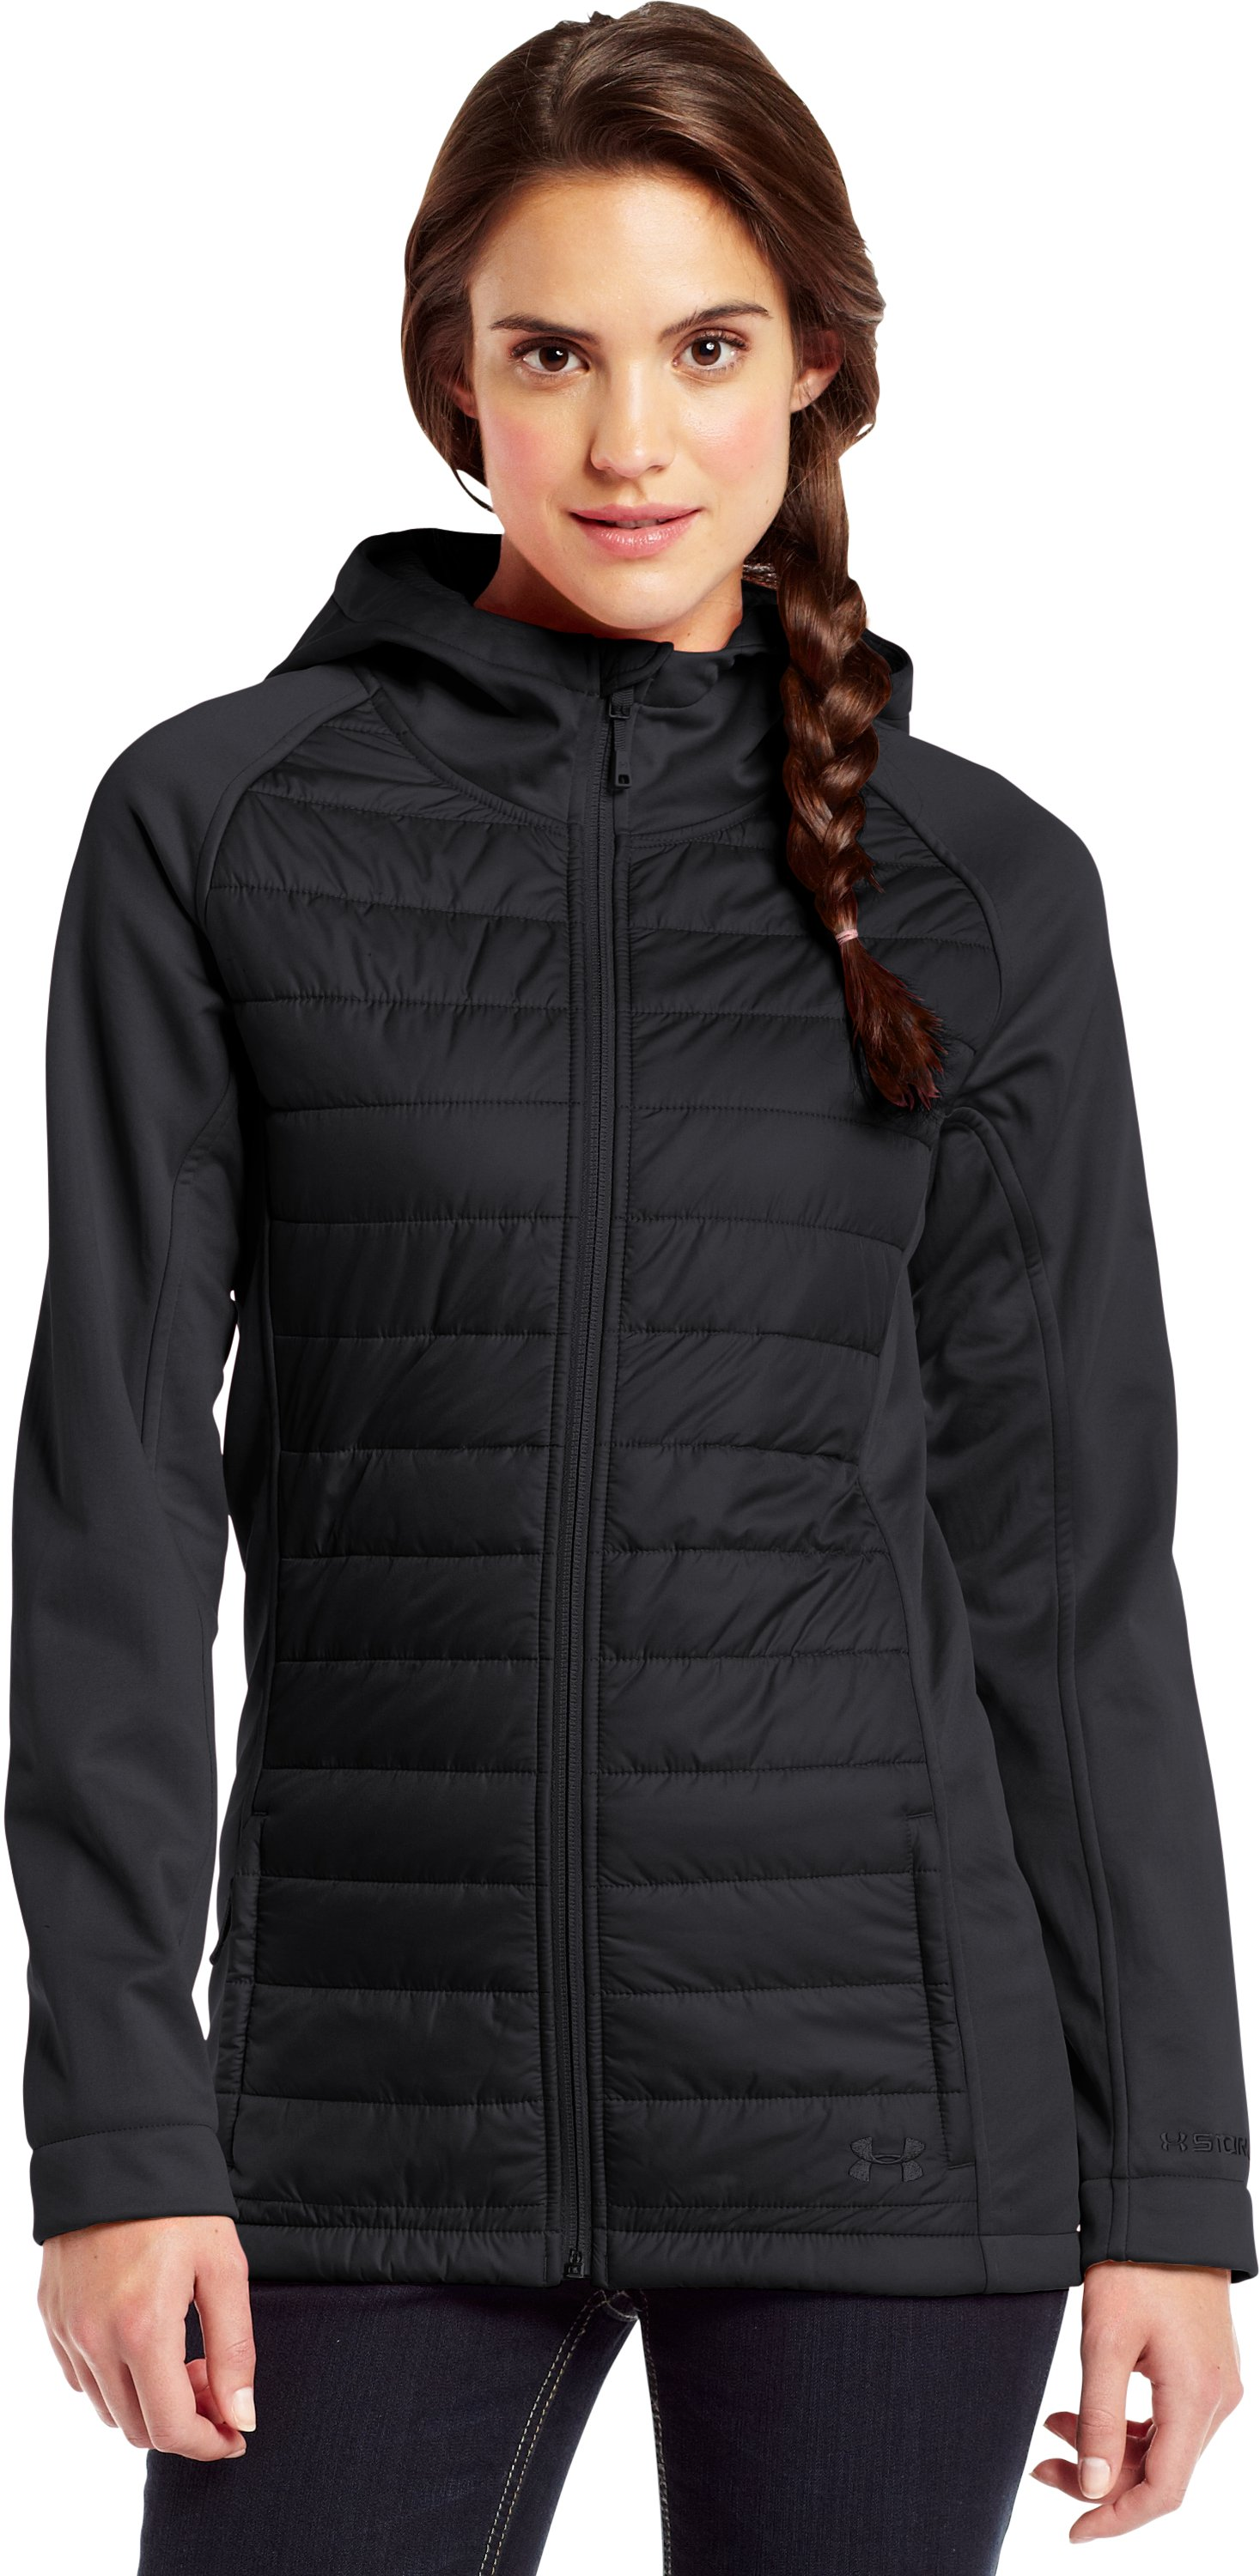 Women's ColdGear® Infrared Werewolf Jacket, Black